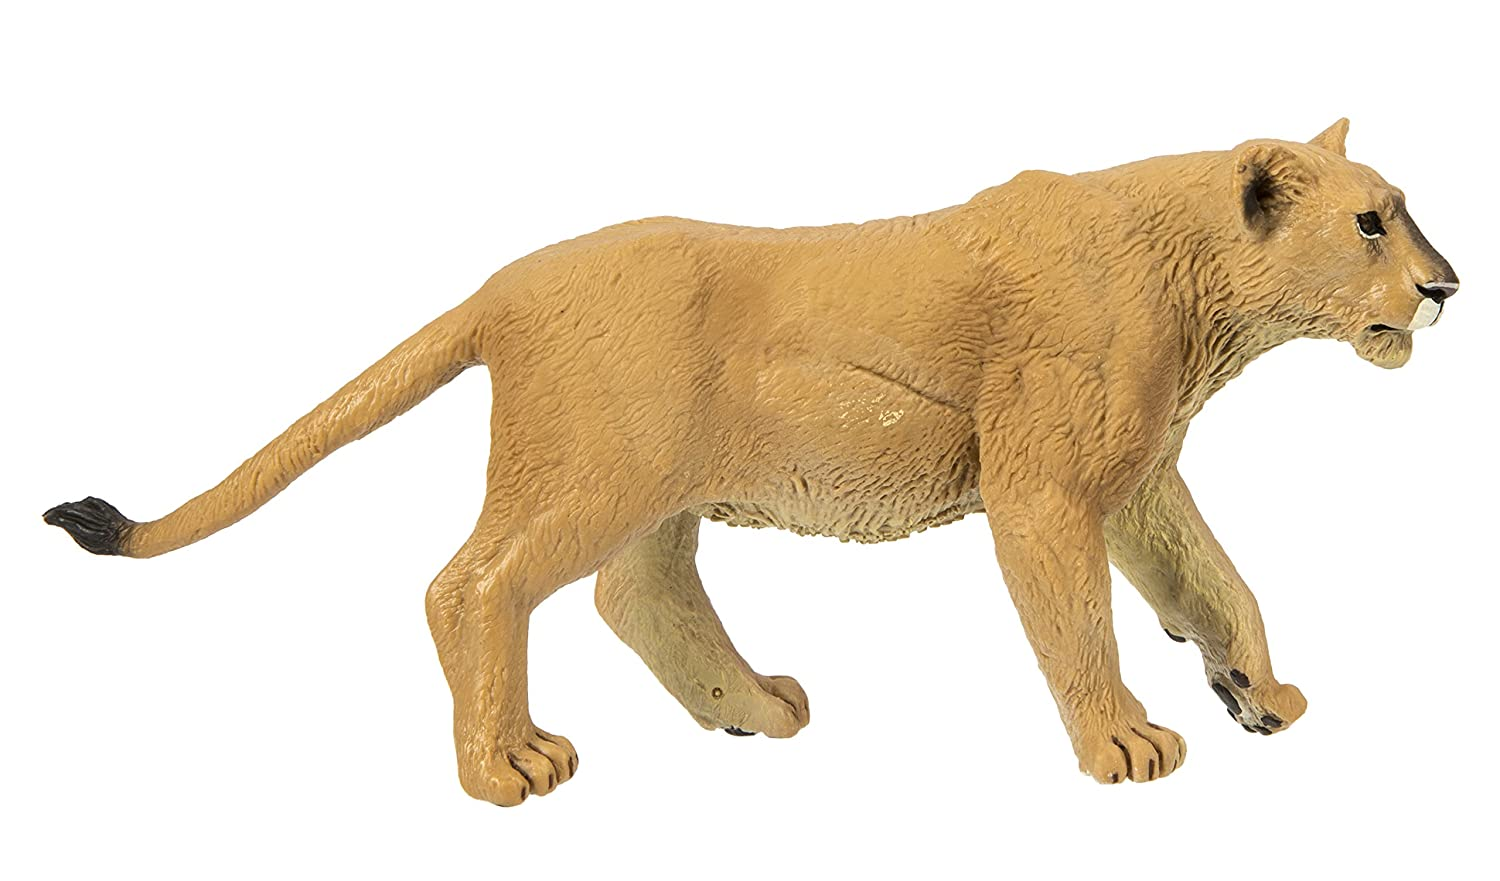 Quality Construction from Safe and BPA Free Materials For Ages 3 and Up 290329 Safari Ltd Wild Safari Wildlife Realistic Hand Painted Toy Figurine Model Lioness